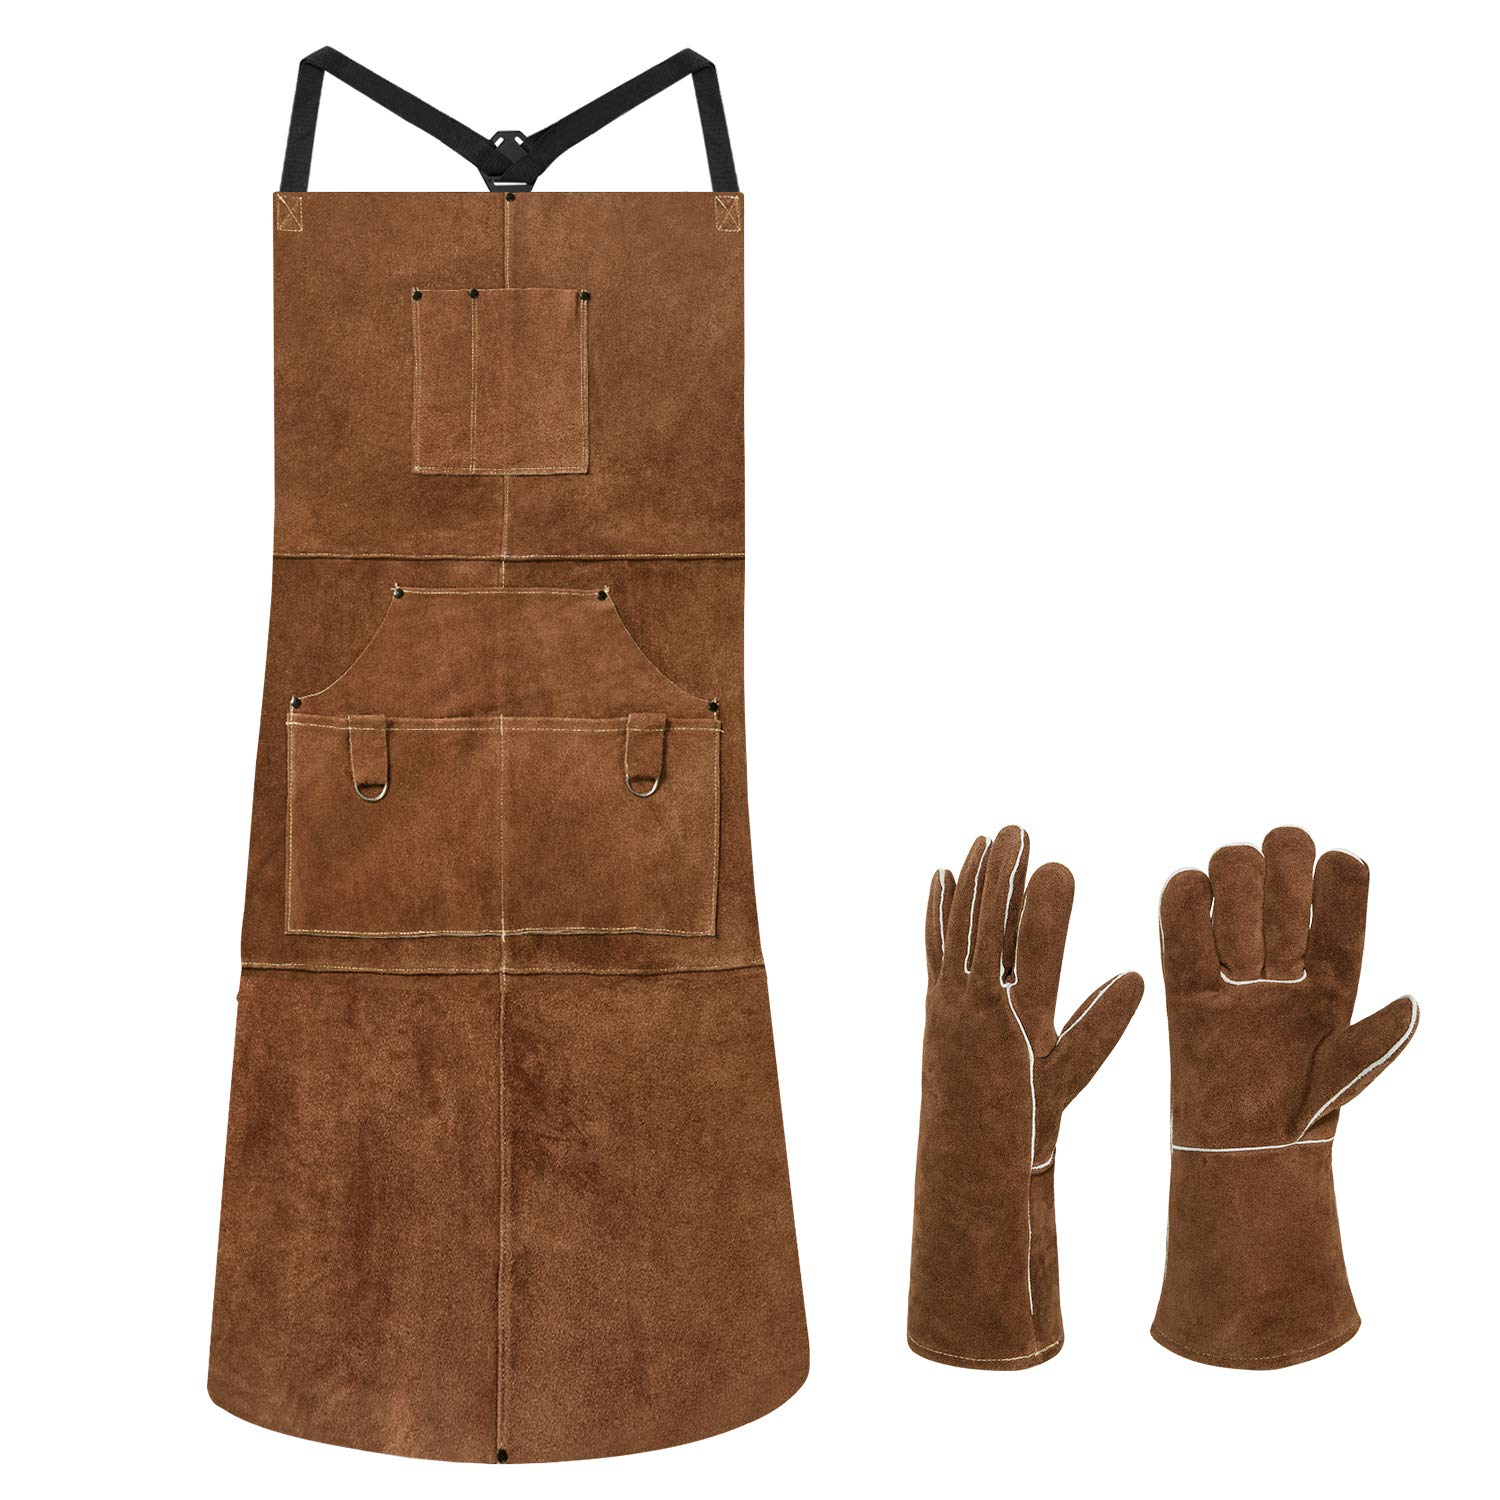 eletecpro Length 42'' 6 Pockets Leather Welding Apron & Welding Gloves Men/Women by eletecpro